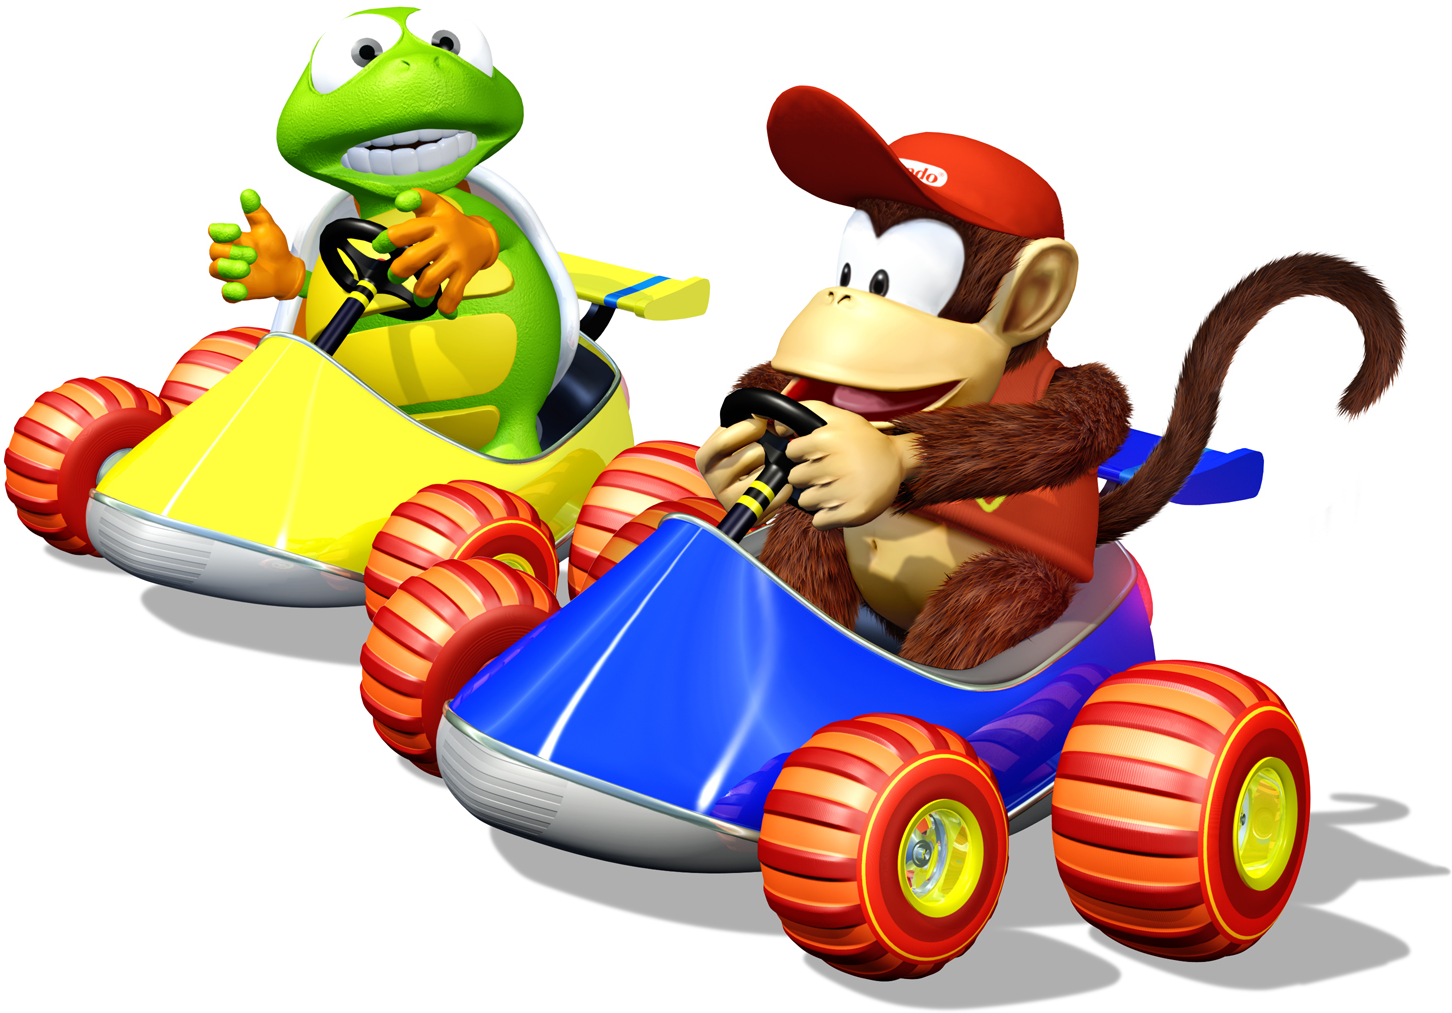 Diddy Kong Racing - RareWare and Nintendo